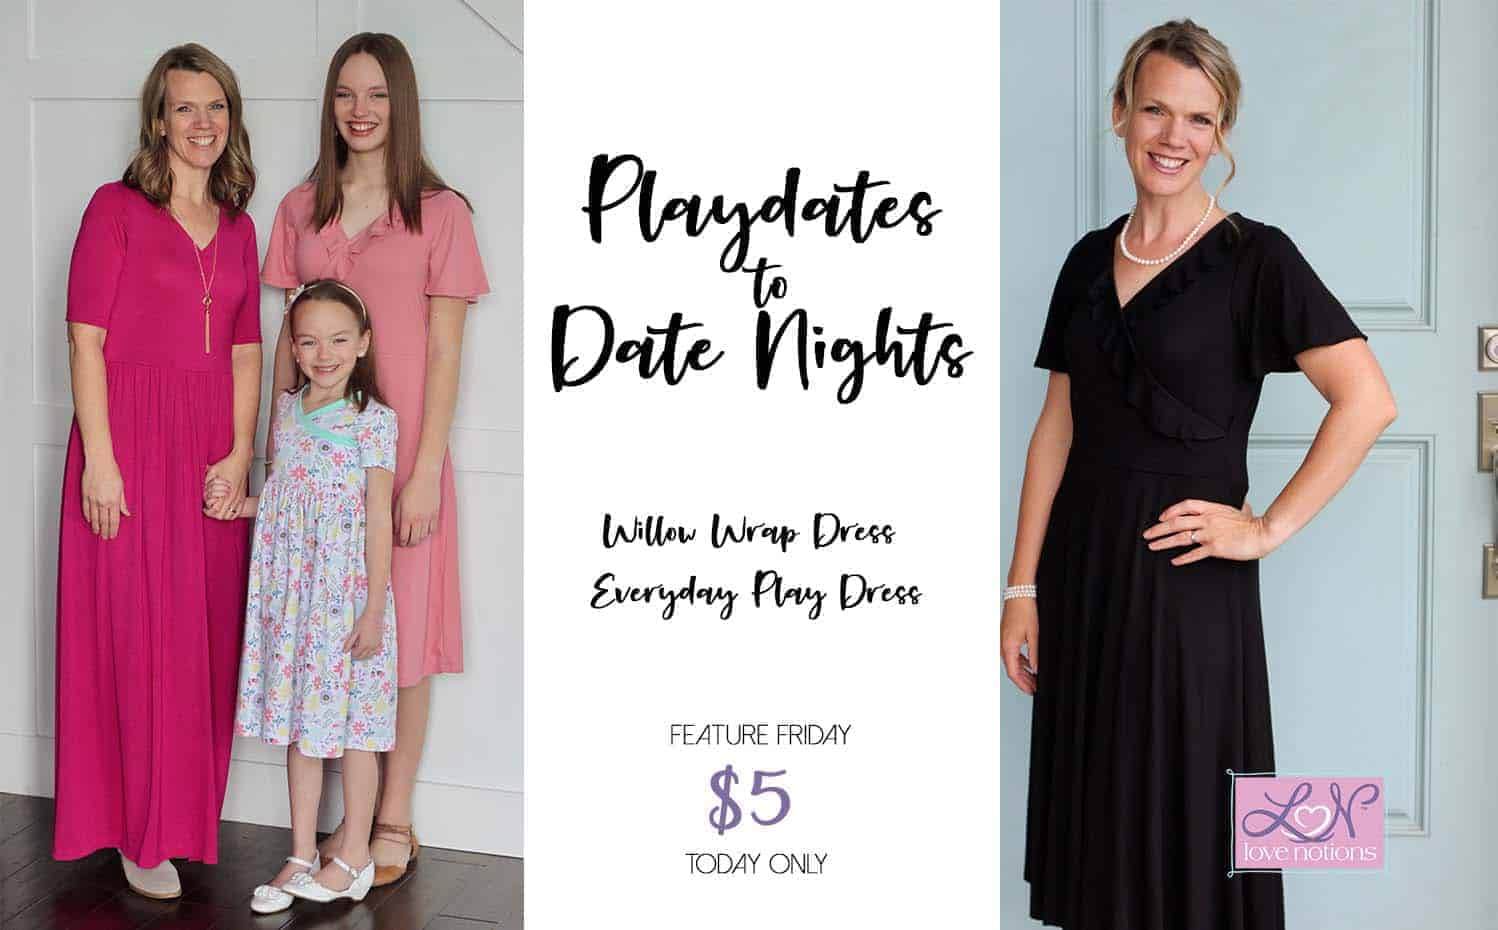 33d551039c3 Everyday Play Dress and Willow Wrap Dress  Playdates to Date Nights ...